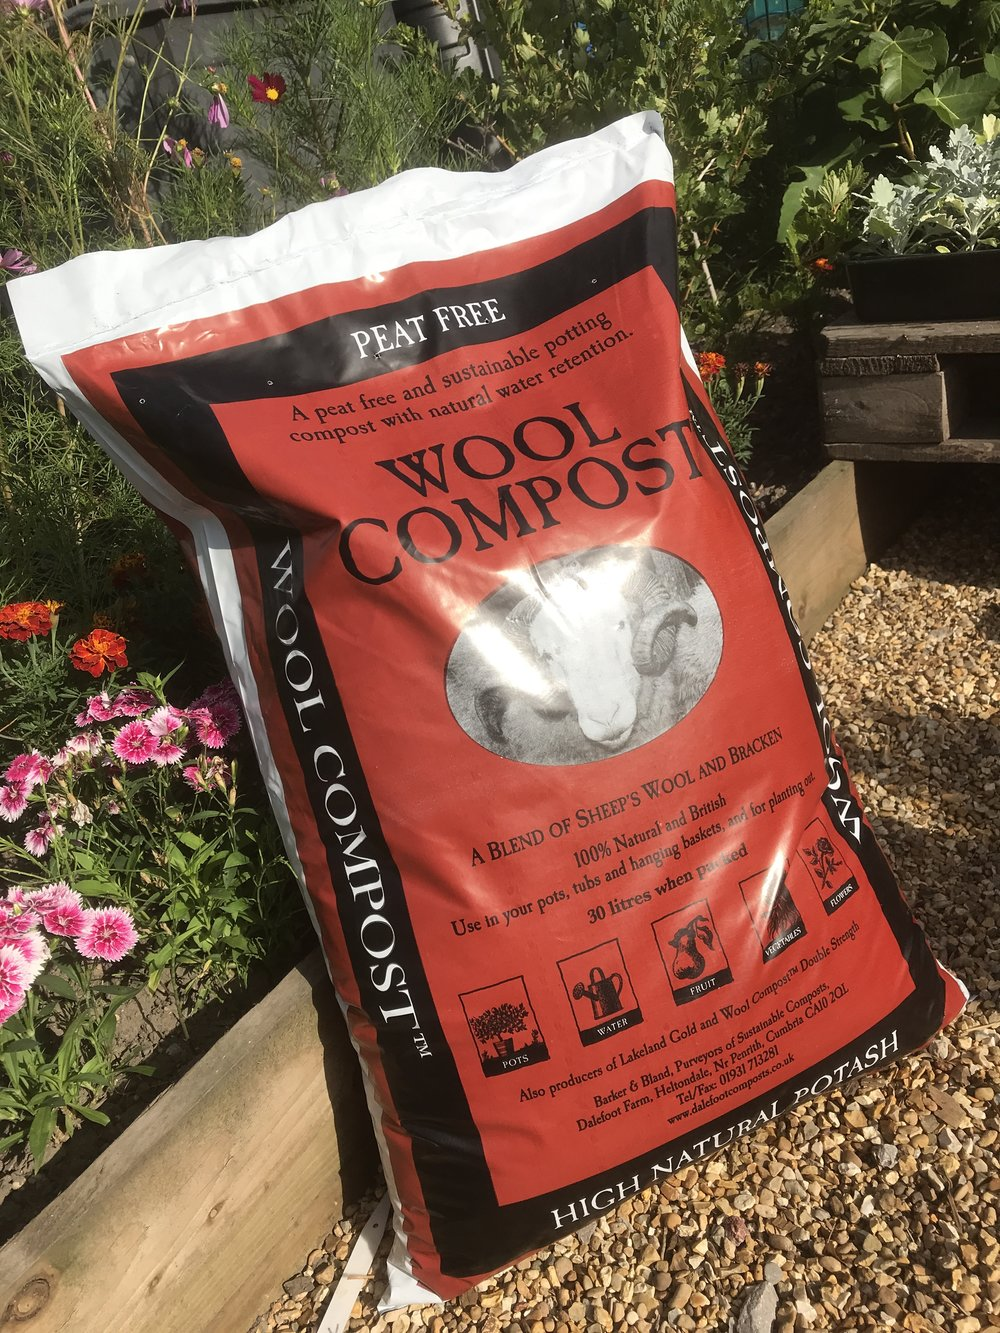 Wool Compost - £7.95 - For growing in containers where water retention is key. No need to add extra feed or water retaining gels. Use in containers, hanging baskets and raised beds